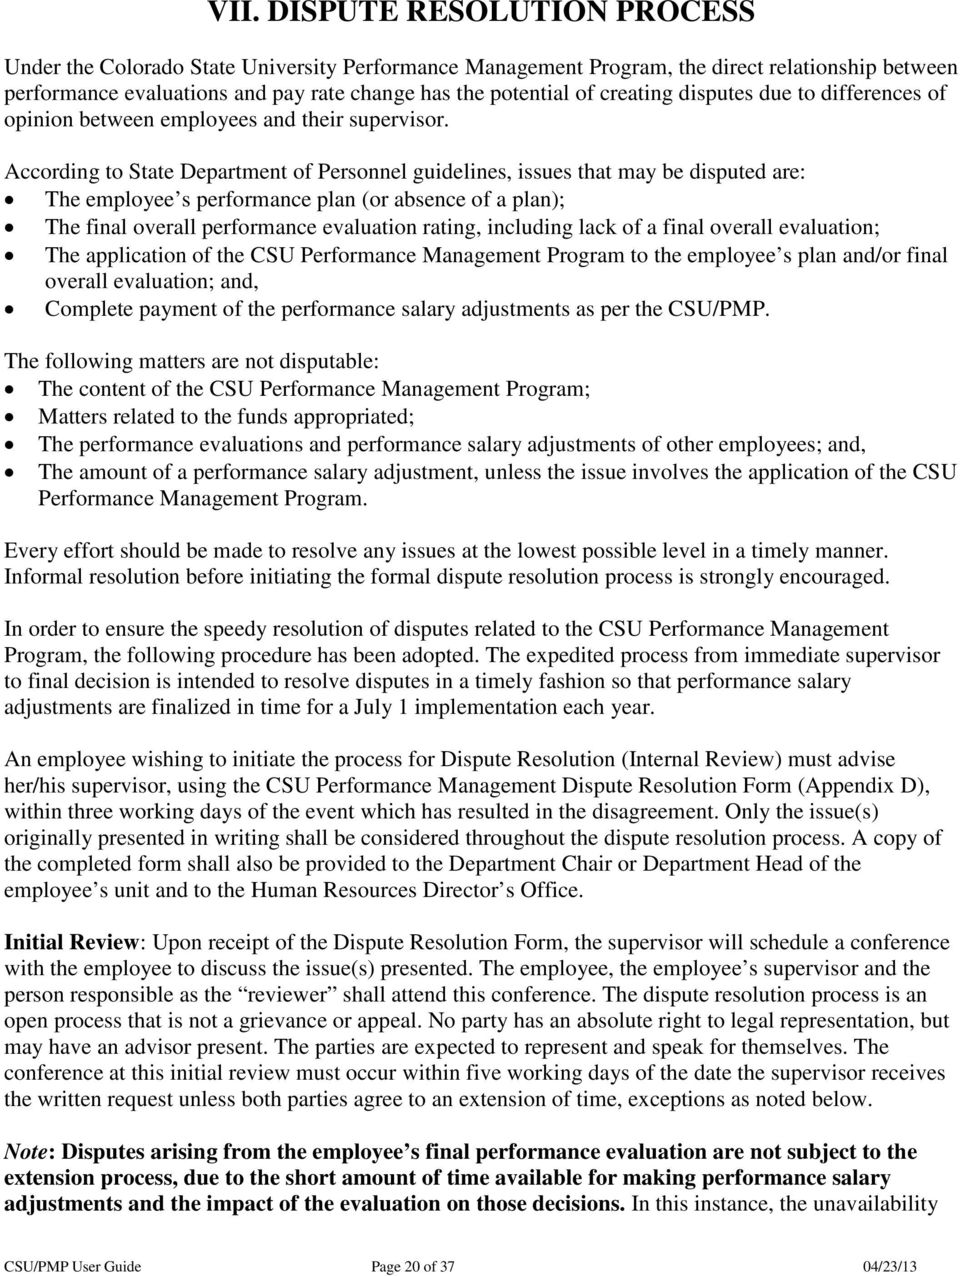 According to State Department of Personnel guidelines, issues that may be disputed are: The employee s performance plan (or absence of a plan); The final overall performance evaluation rating,